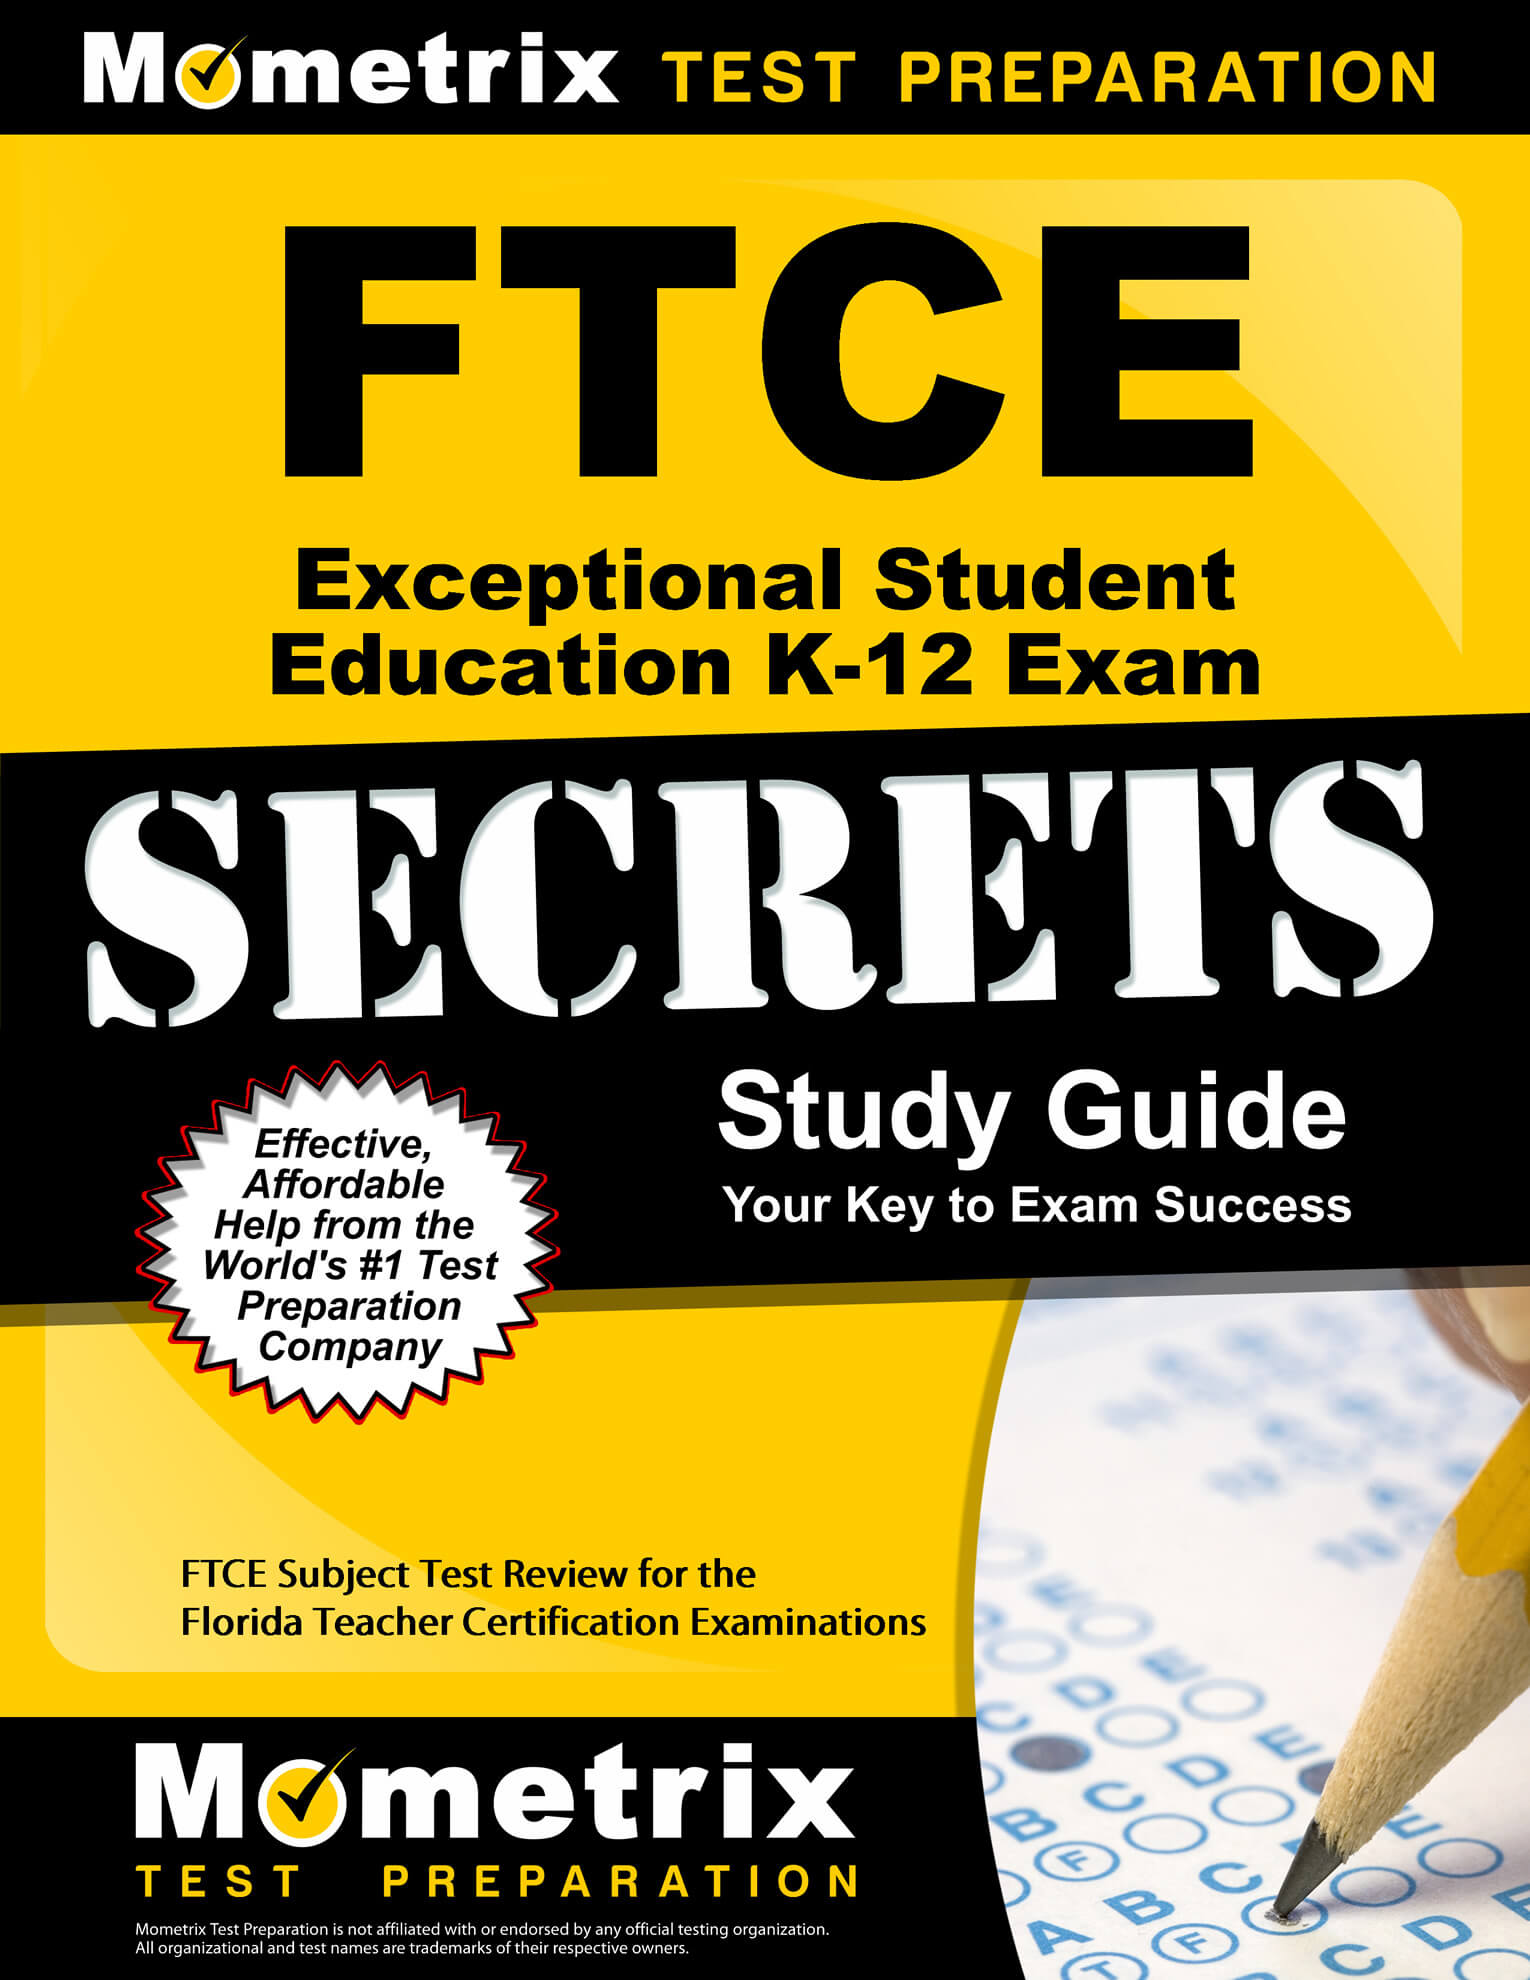 FTCE Exceptional Student Education K-12 Study Guide